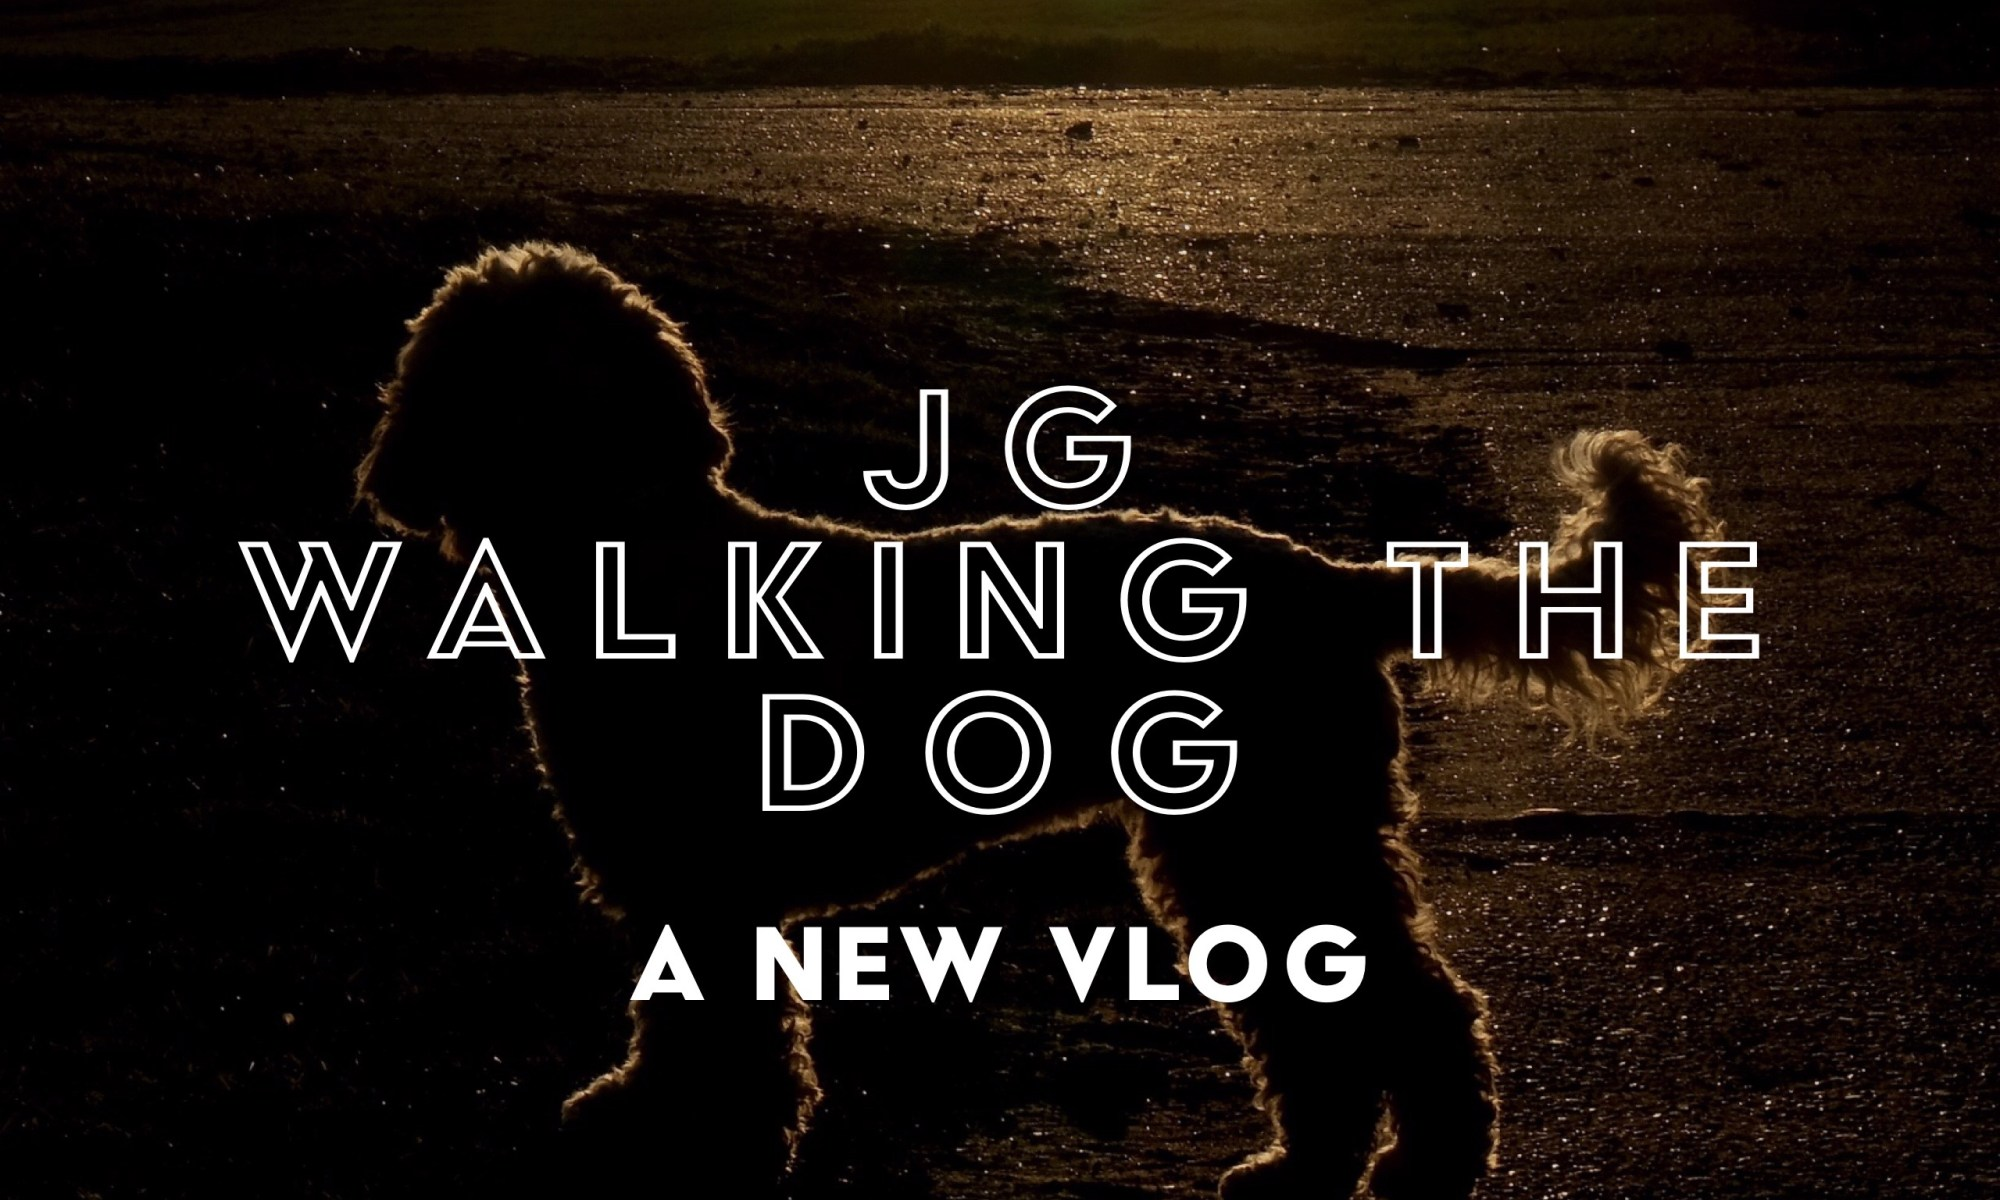 Walking the Dog promo